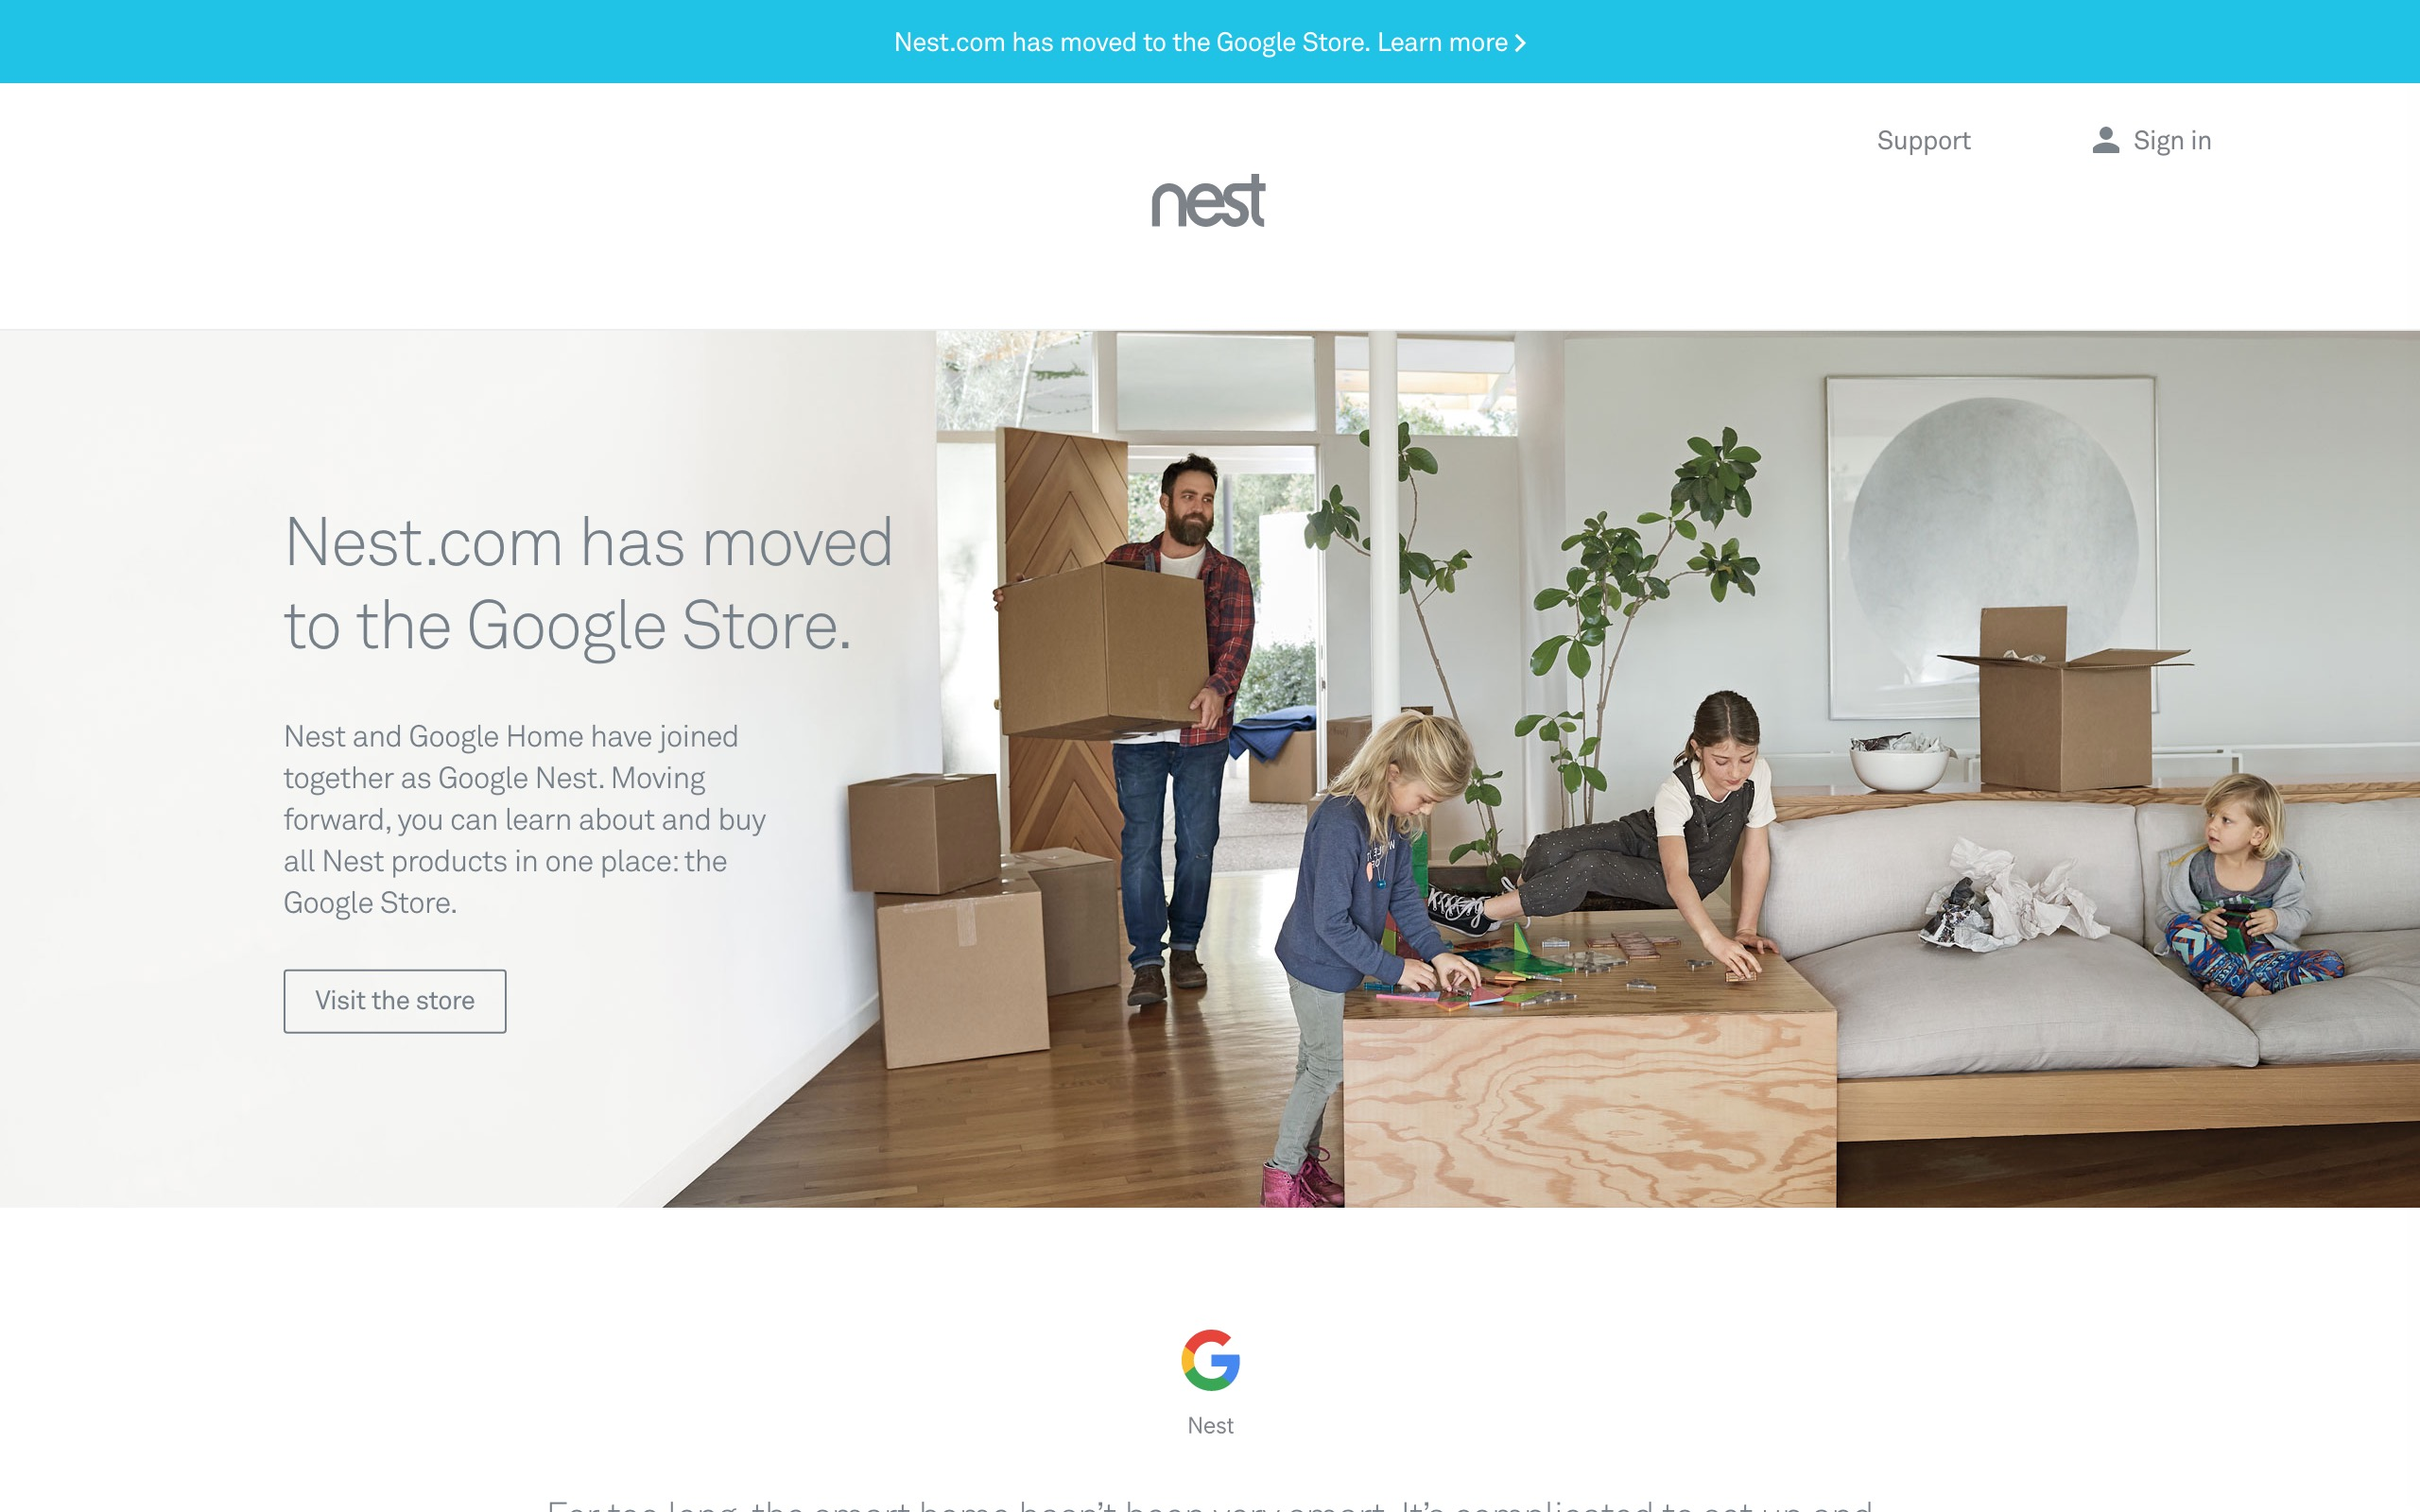 Google Store replaces Nest